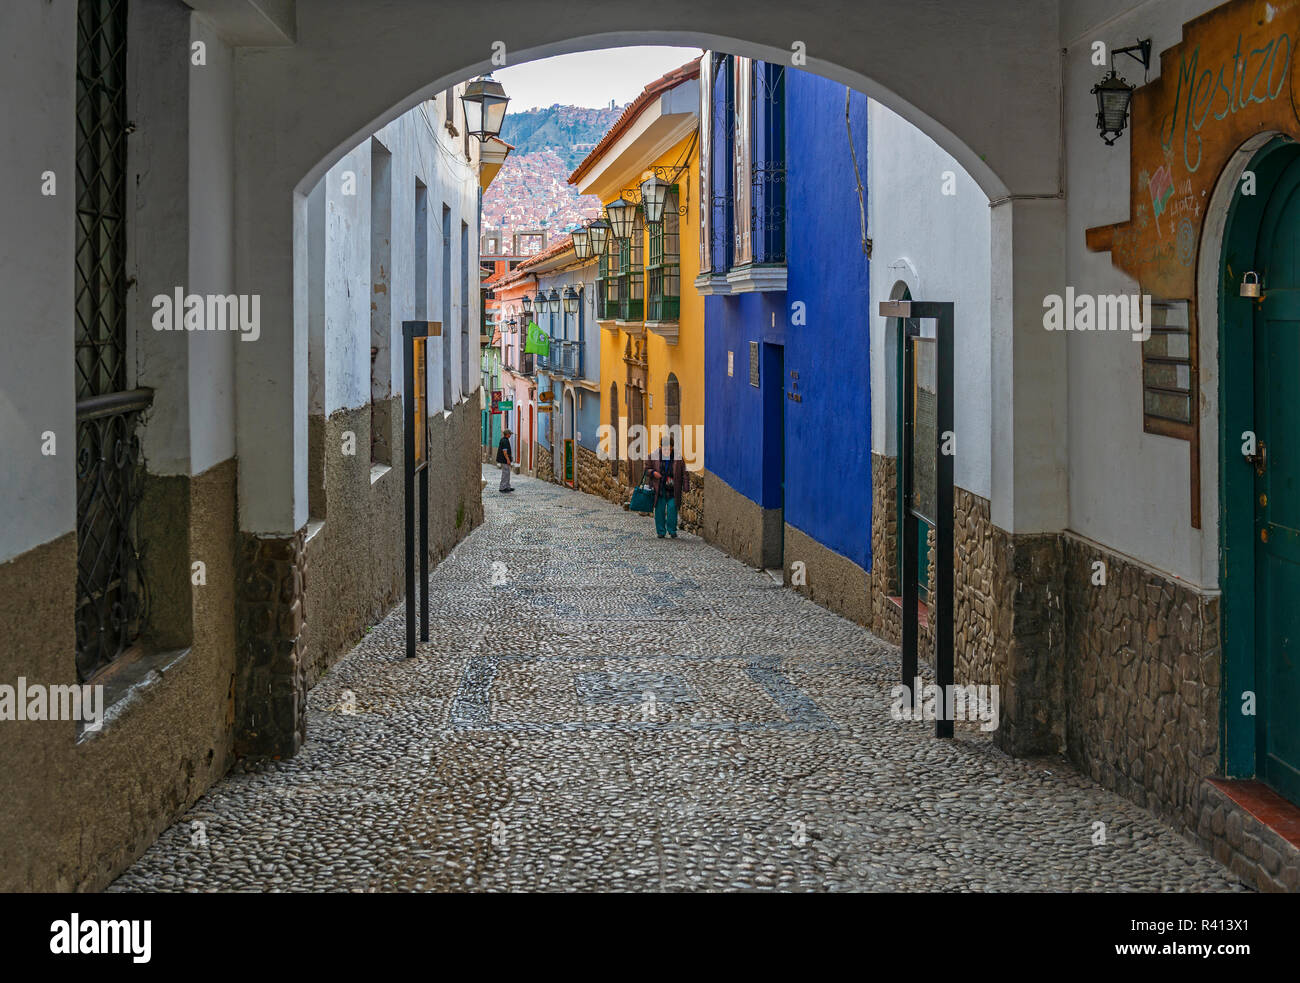 People walking by the coloorful Jaen street with a Spanish colonial style architecture in the historic city center of La Paz, Bolivia. - Stock Image